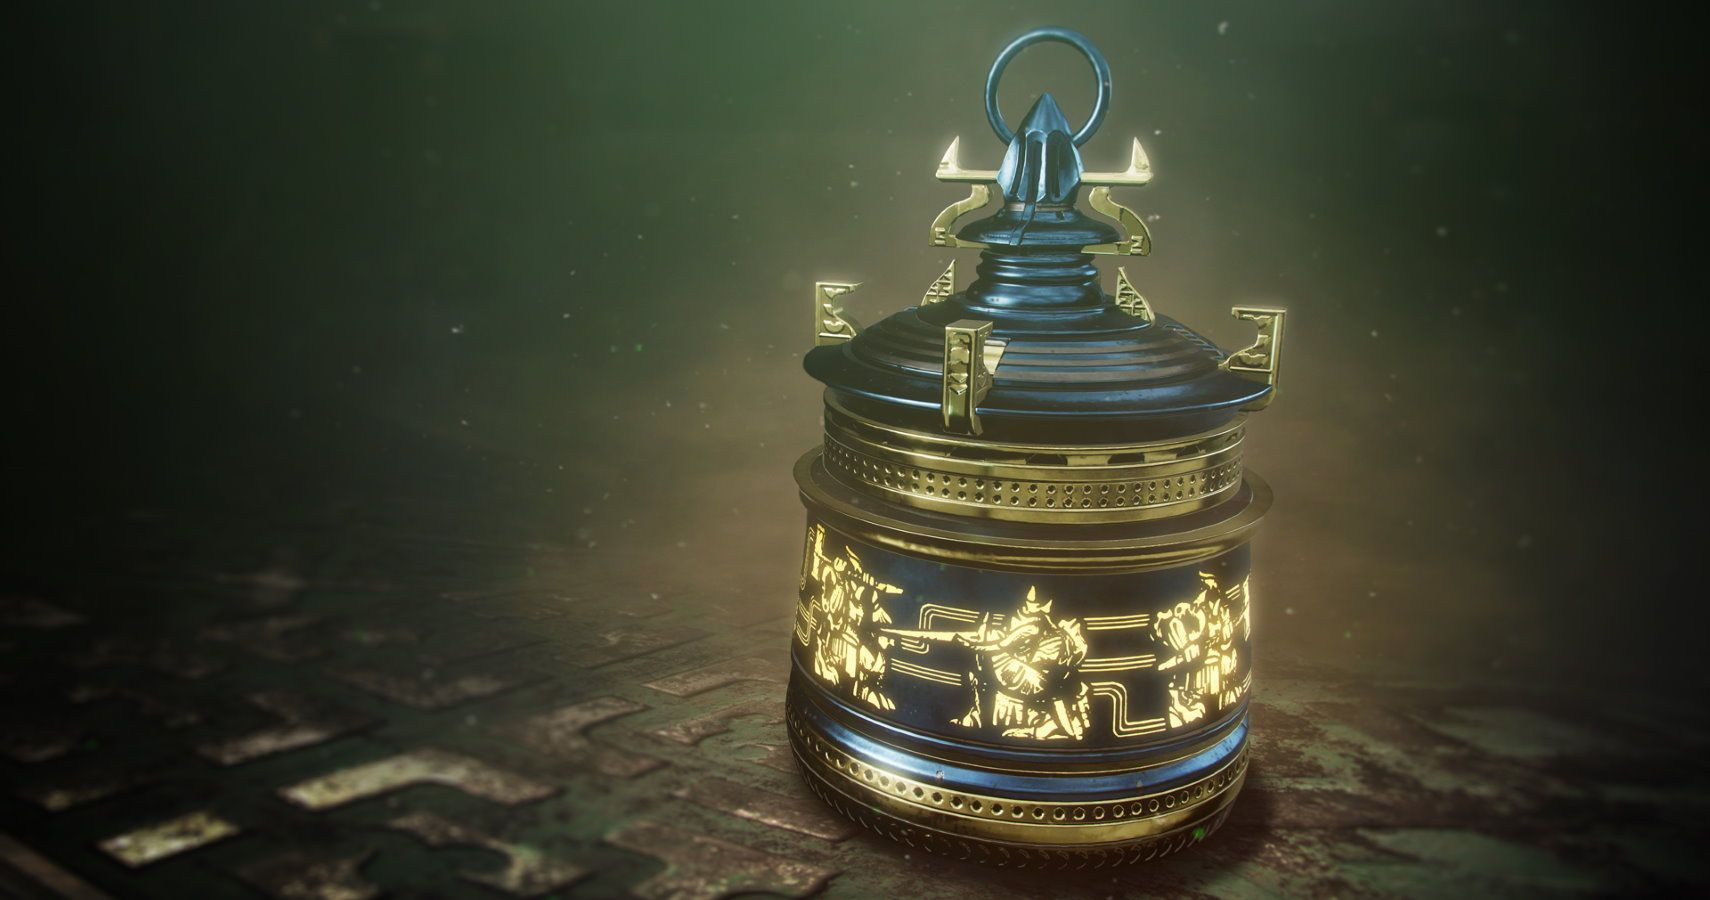 Destiny 2: All The Mods You Can Get From The Bell Of Conquests Seasonal Artifact